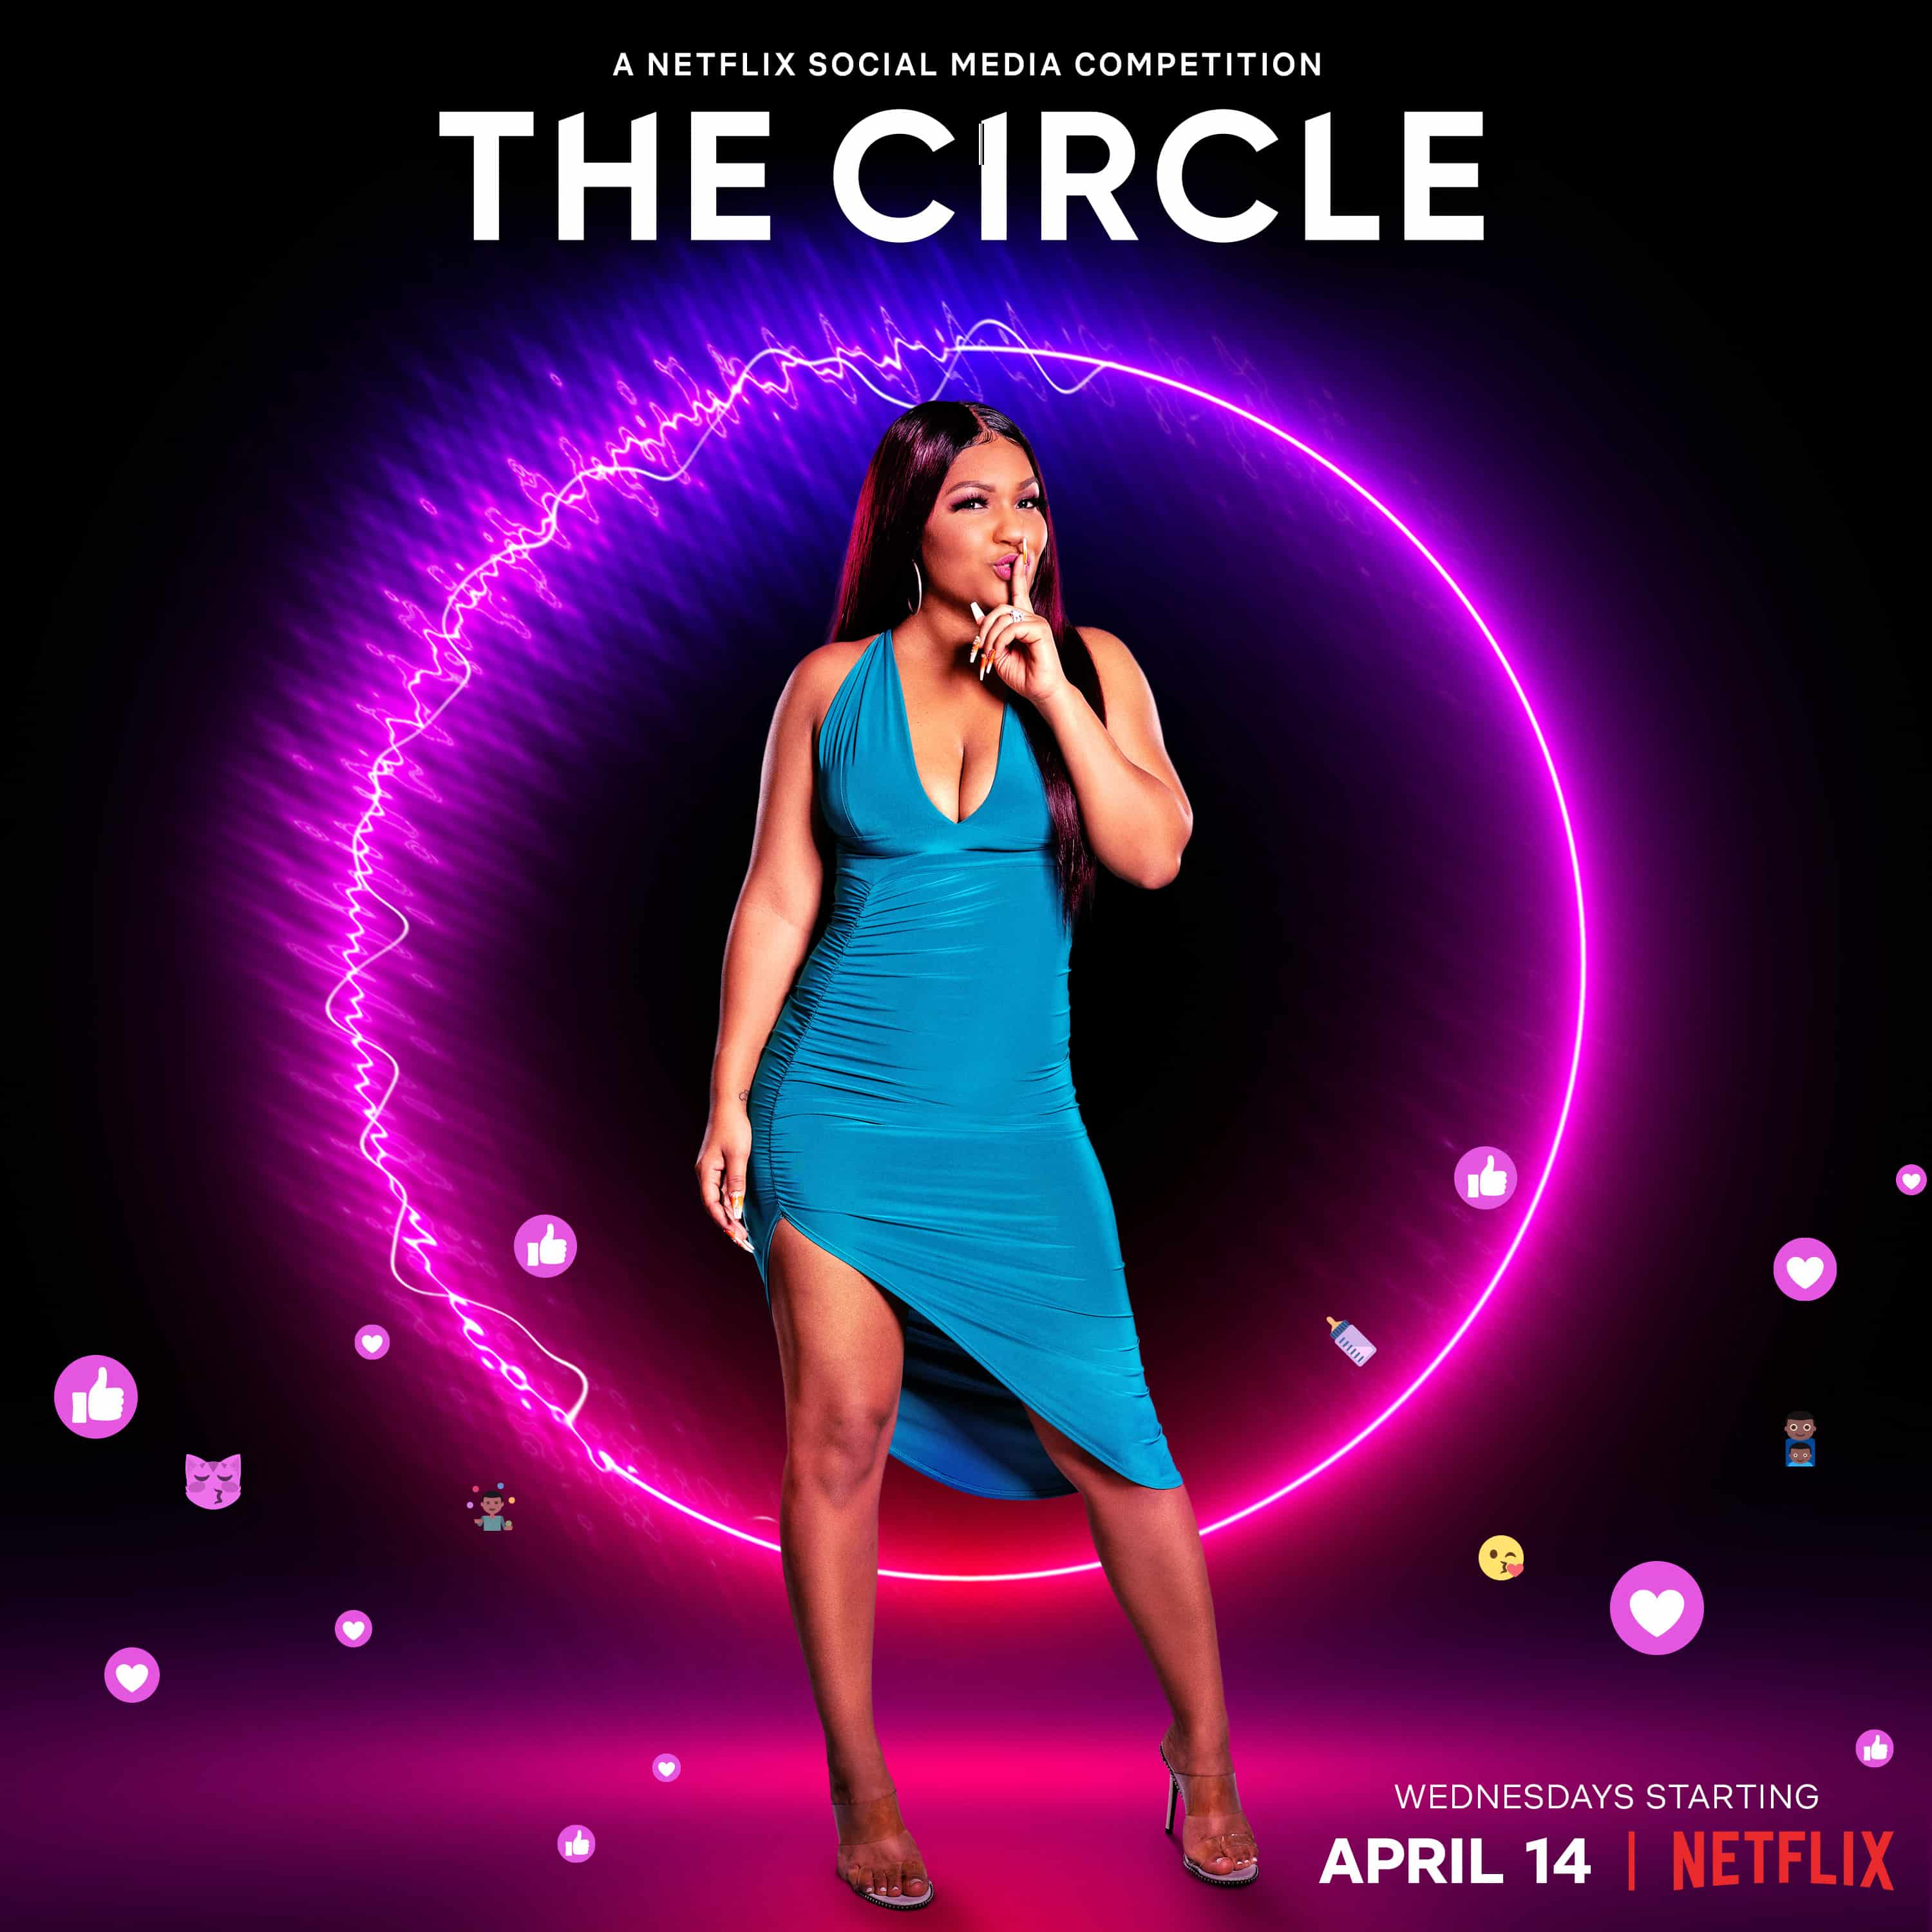 Deleesa in promotional material for The Circle Season 2